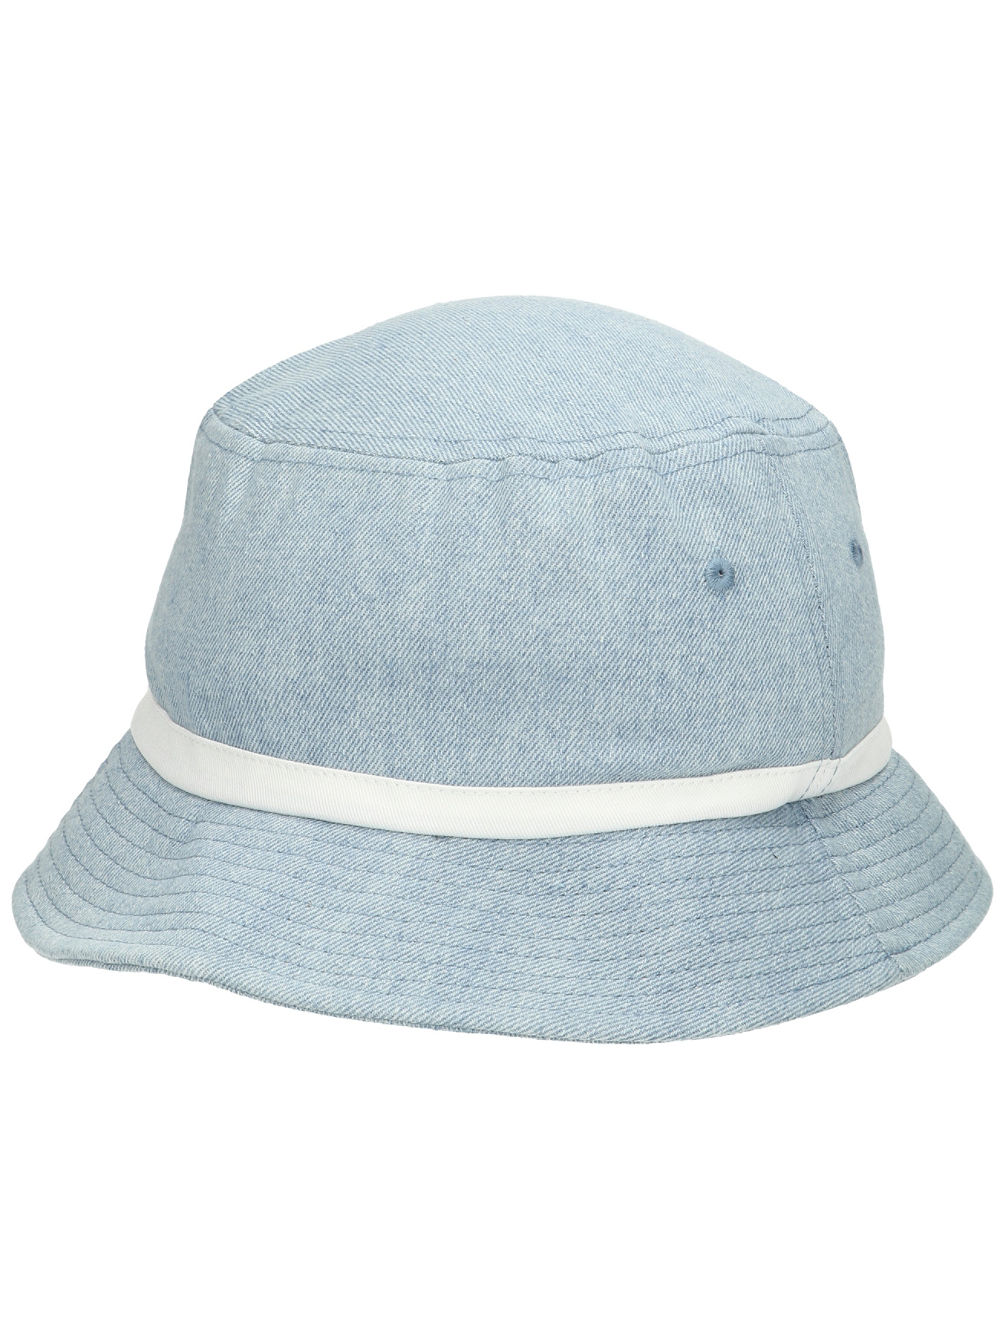 7362b8f5d18 Buy Empyre Totally Bucket Hat online at Blue Tomato